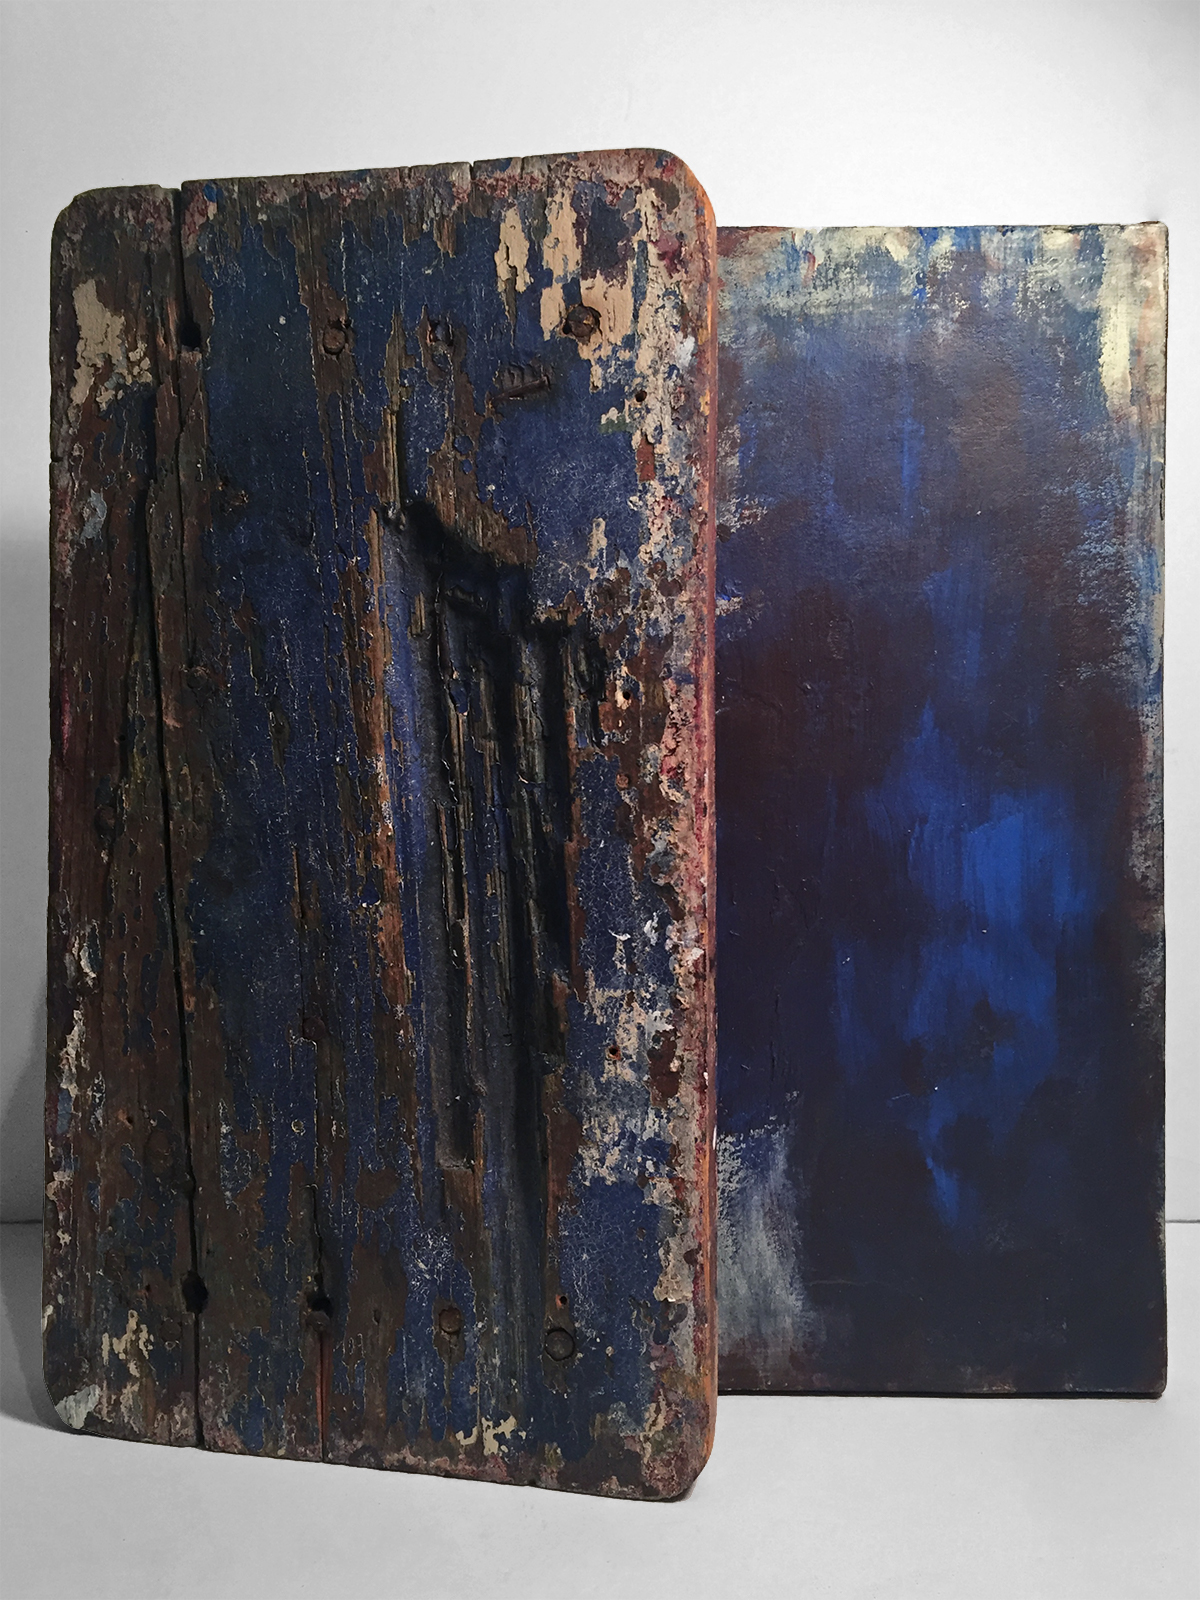 IONIAN   Found wood, acrylic, paper, canvas  14 x 13 x 3 Inches